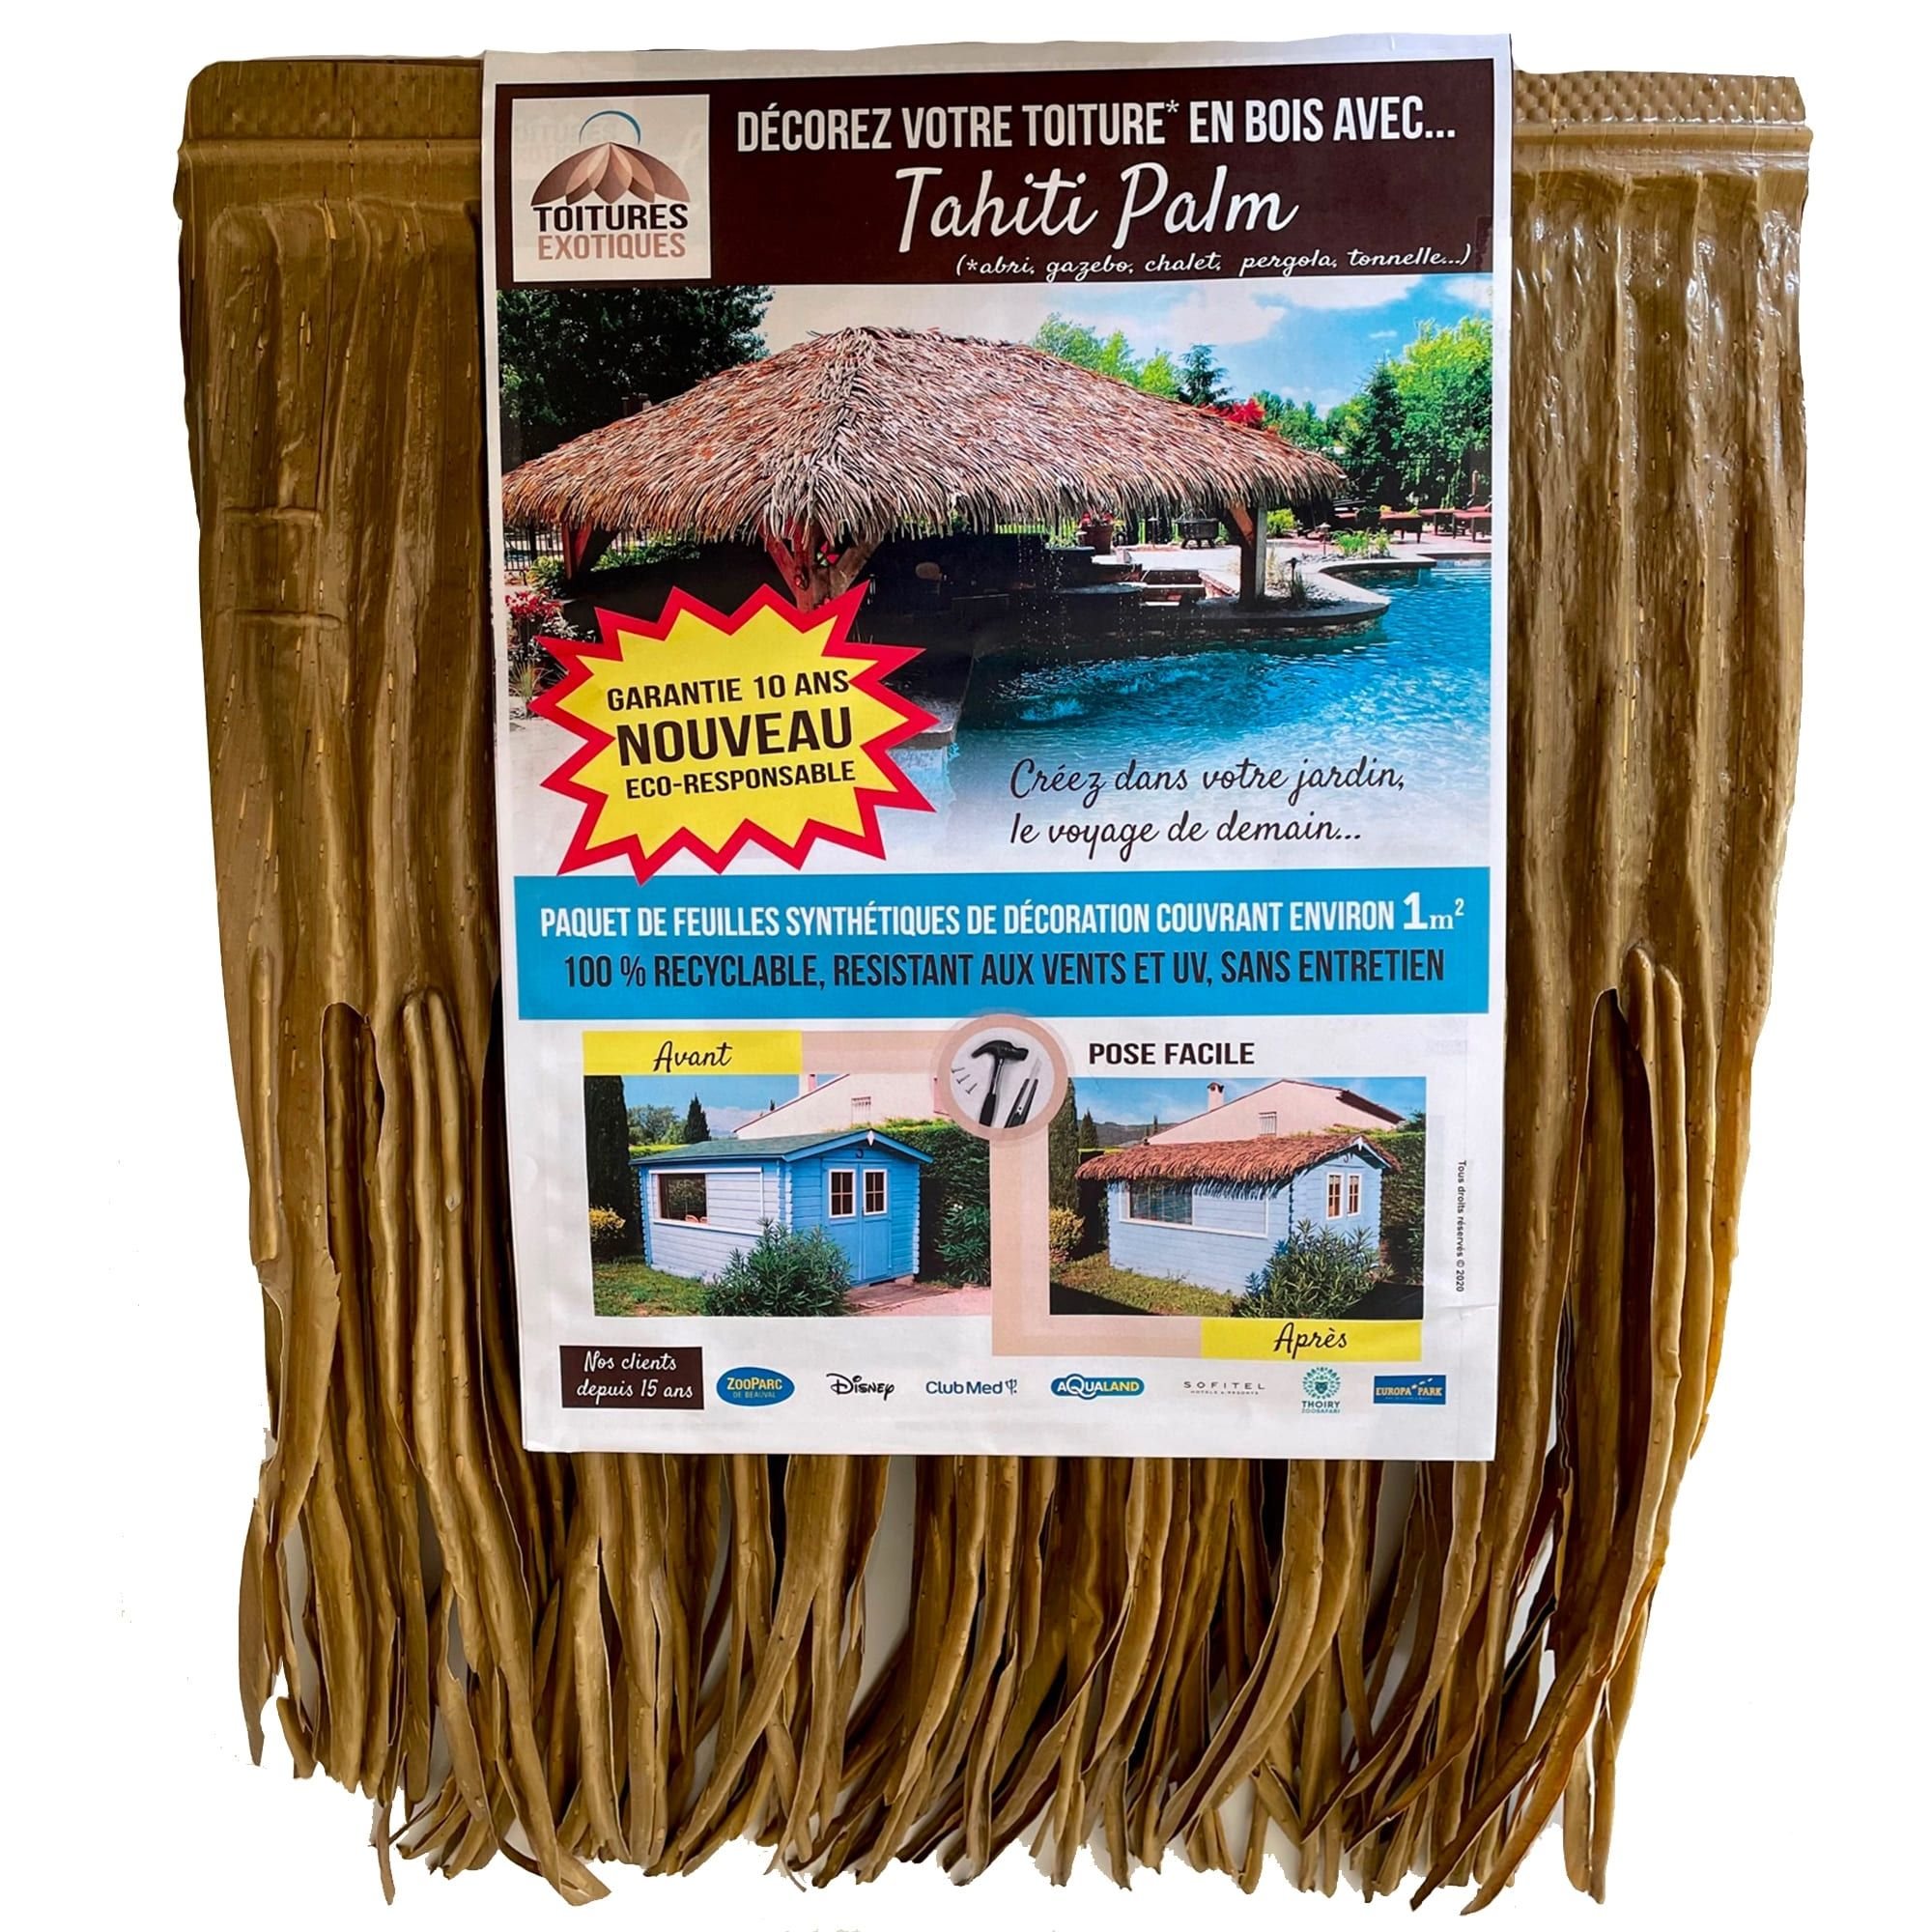 Fausse toiture exotique Tahiti Palm